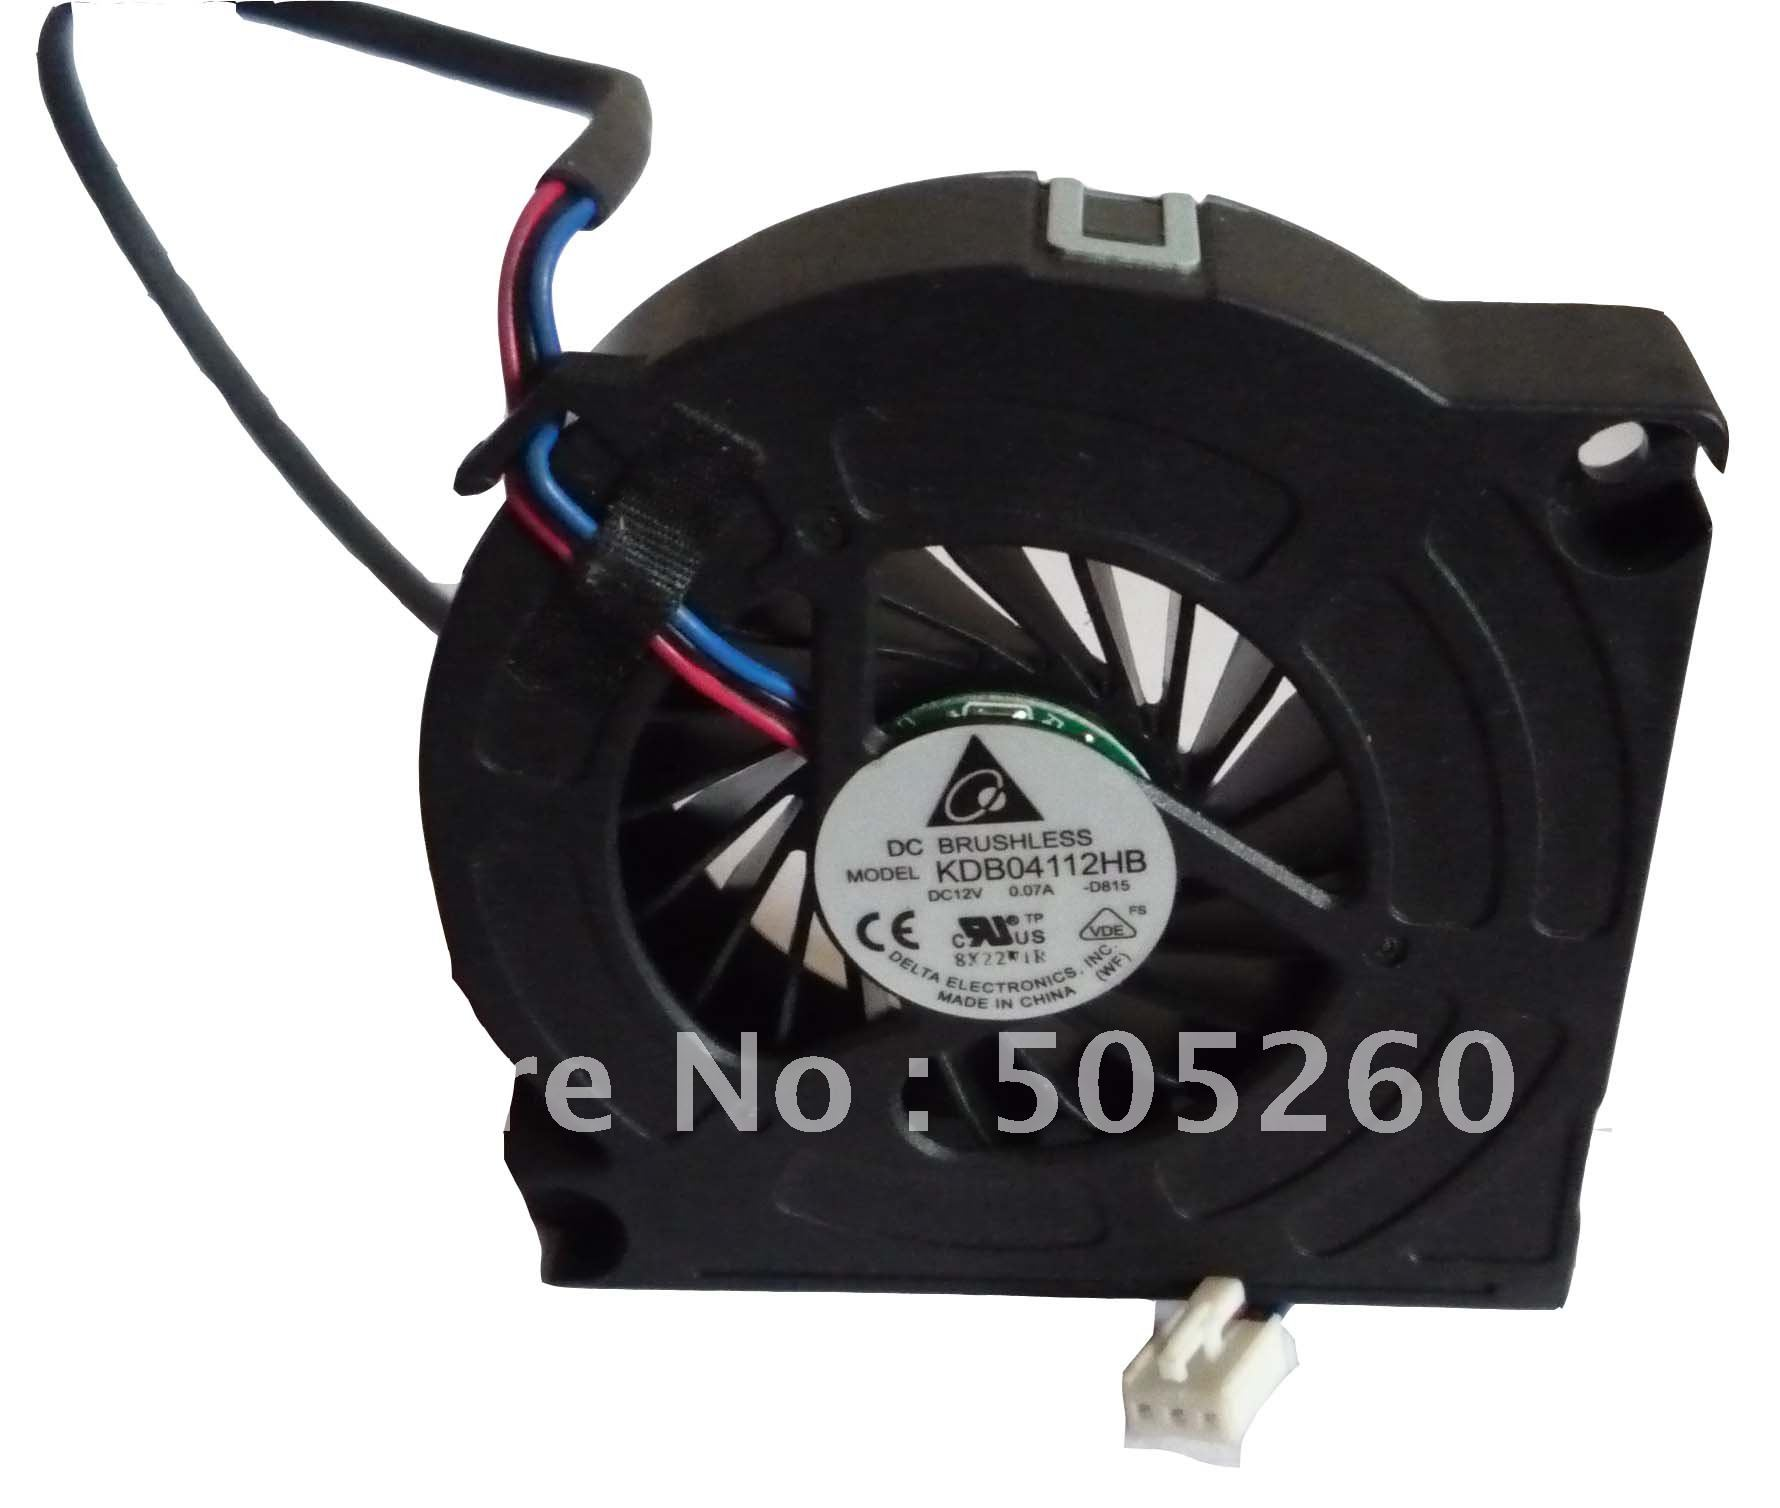 DELTA 6015 12V 0.07A KDB04112HB 6CM Mute blower Projector cooler cooling fan FOR TV SAMSUNG LE40A856S1 LE52A856S1MXXC aluminum alloy mute cooling fan black orange